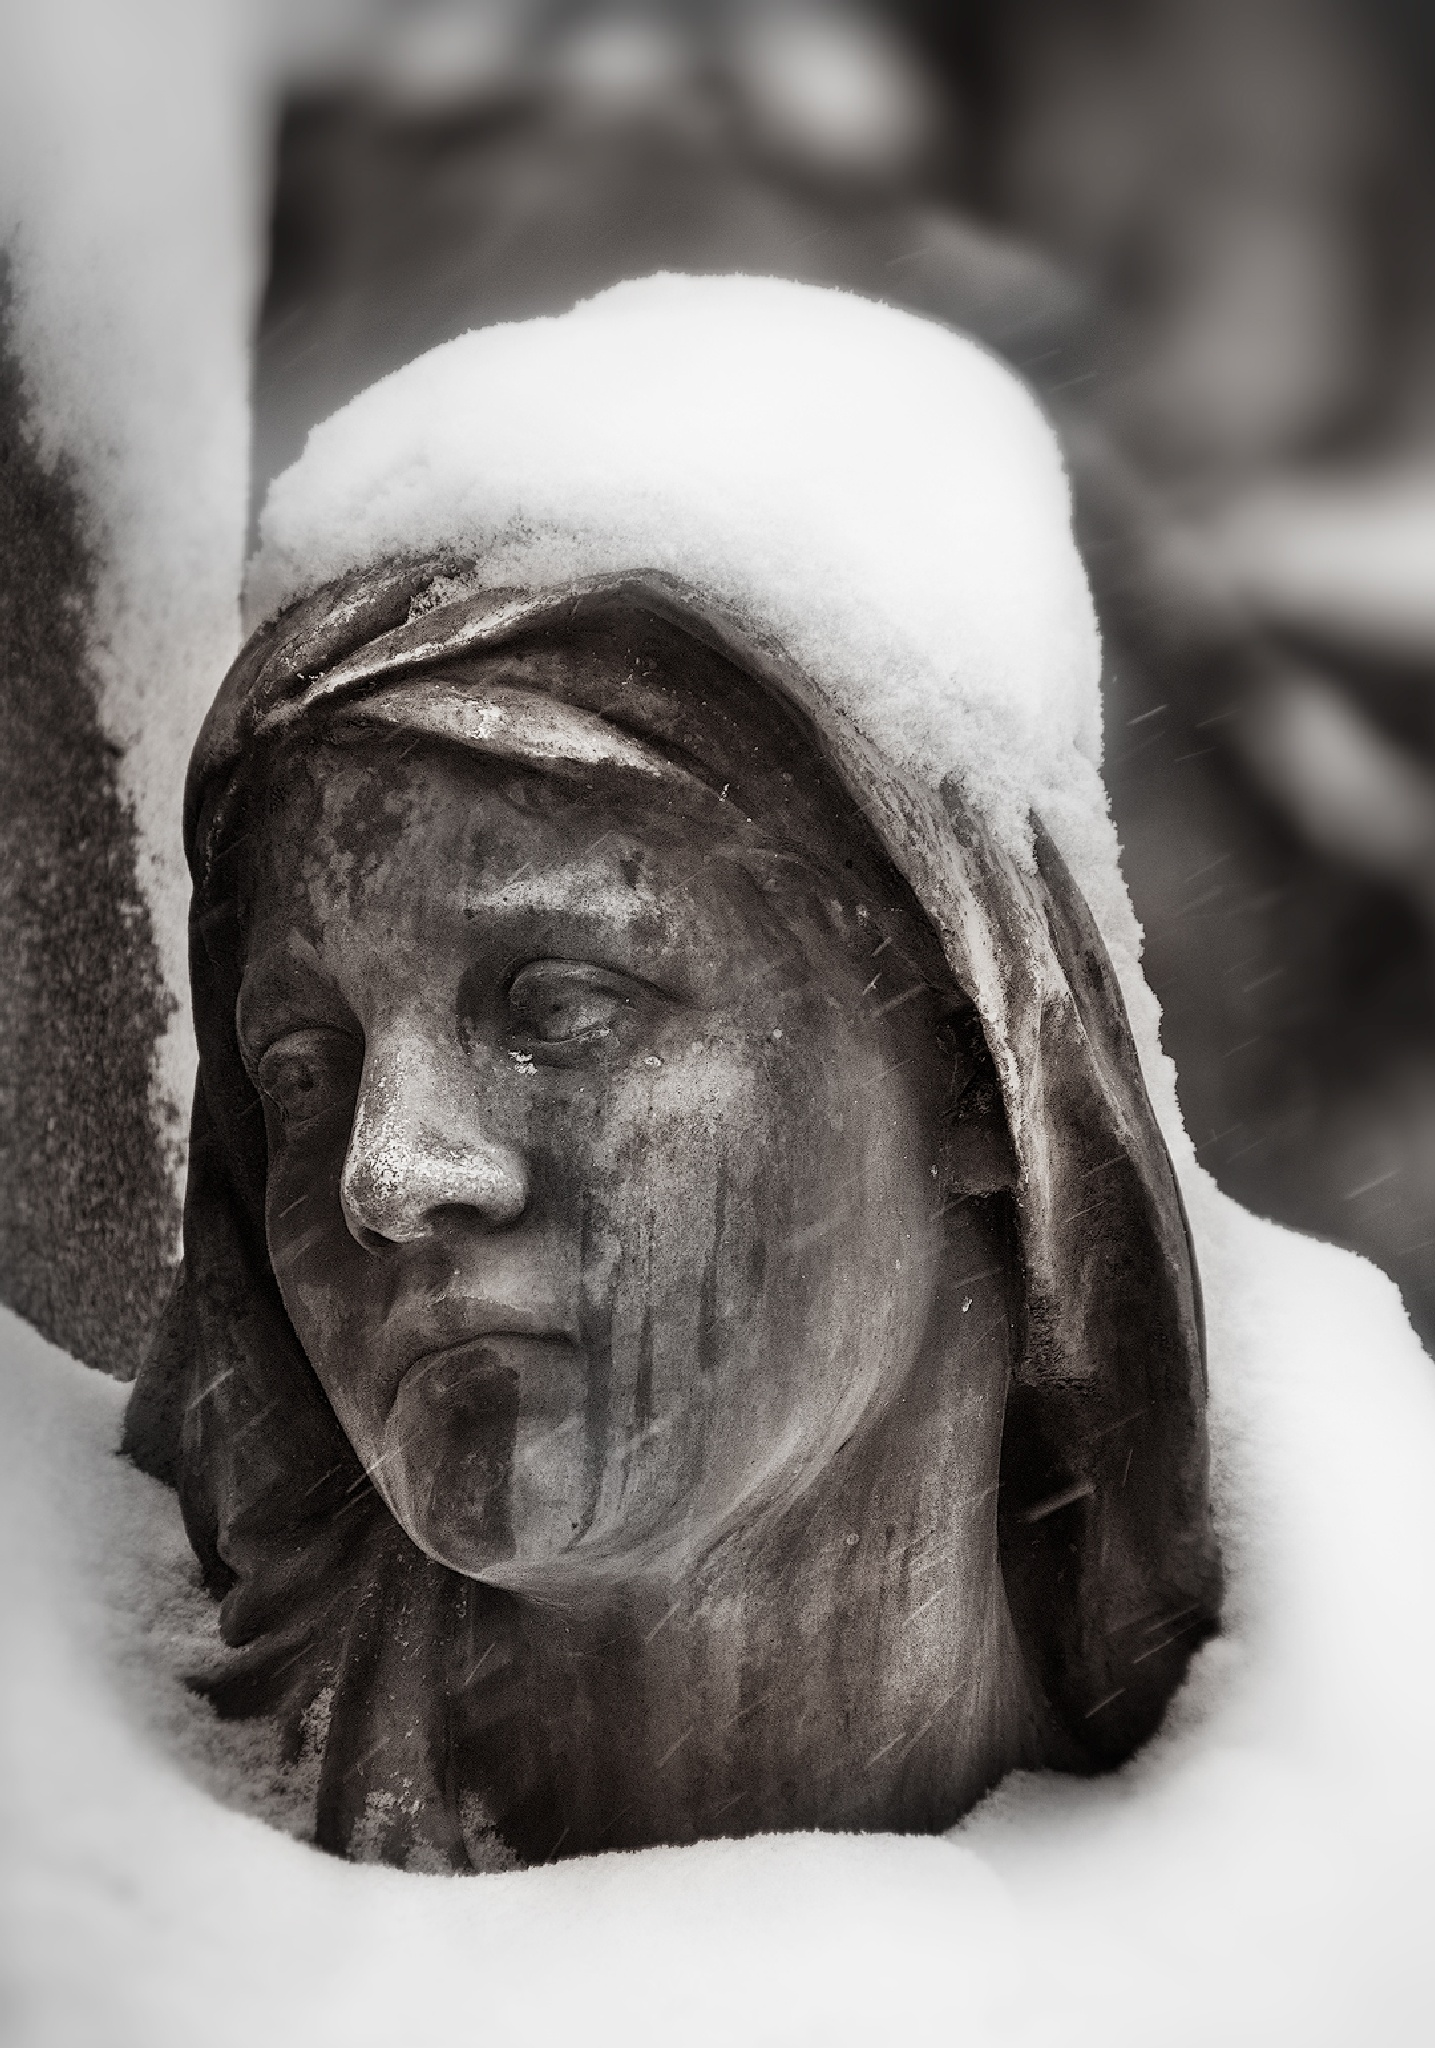 """""""Statue draped in snow"""" by Peter Cohn"""